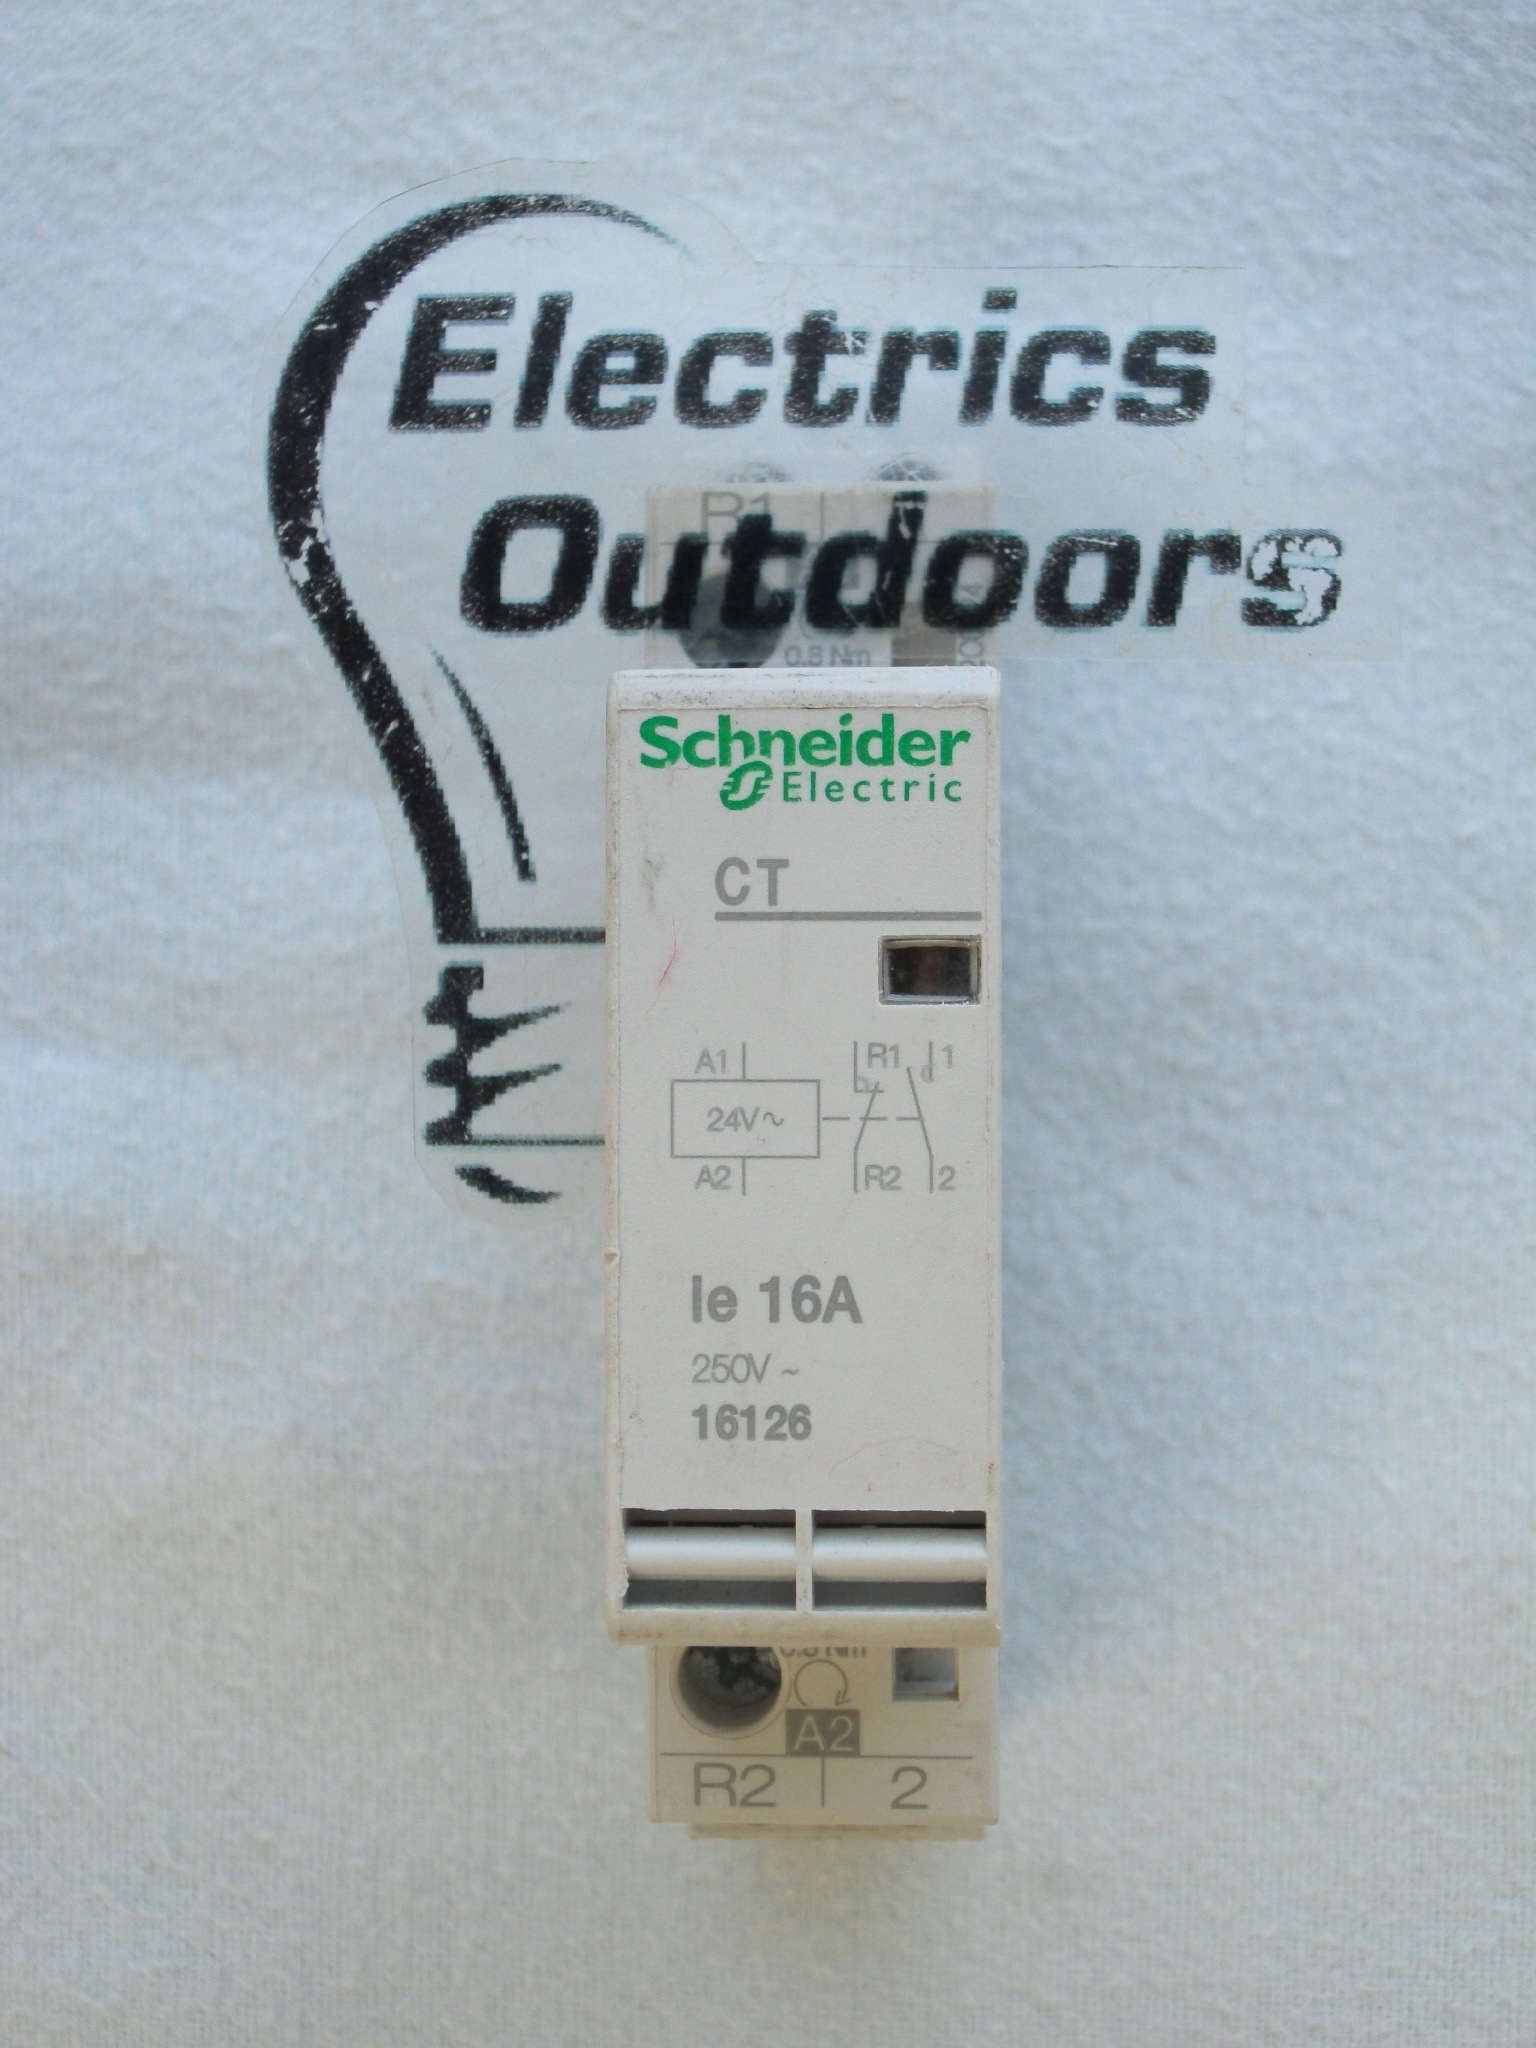 SCHNEIDER ELECTRIC 16 AMP 24V DOUBLE POLE CONTACTOR 250V CT 16126 BS EN 61095